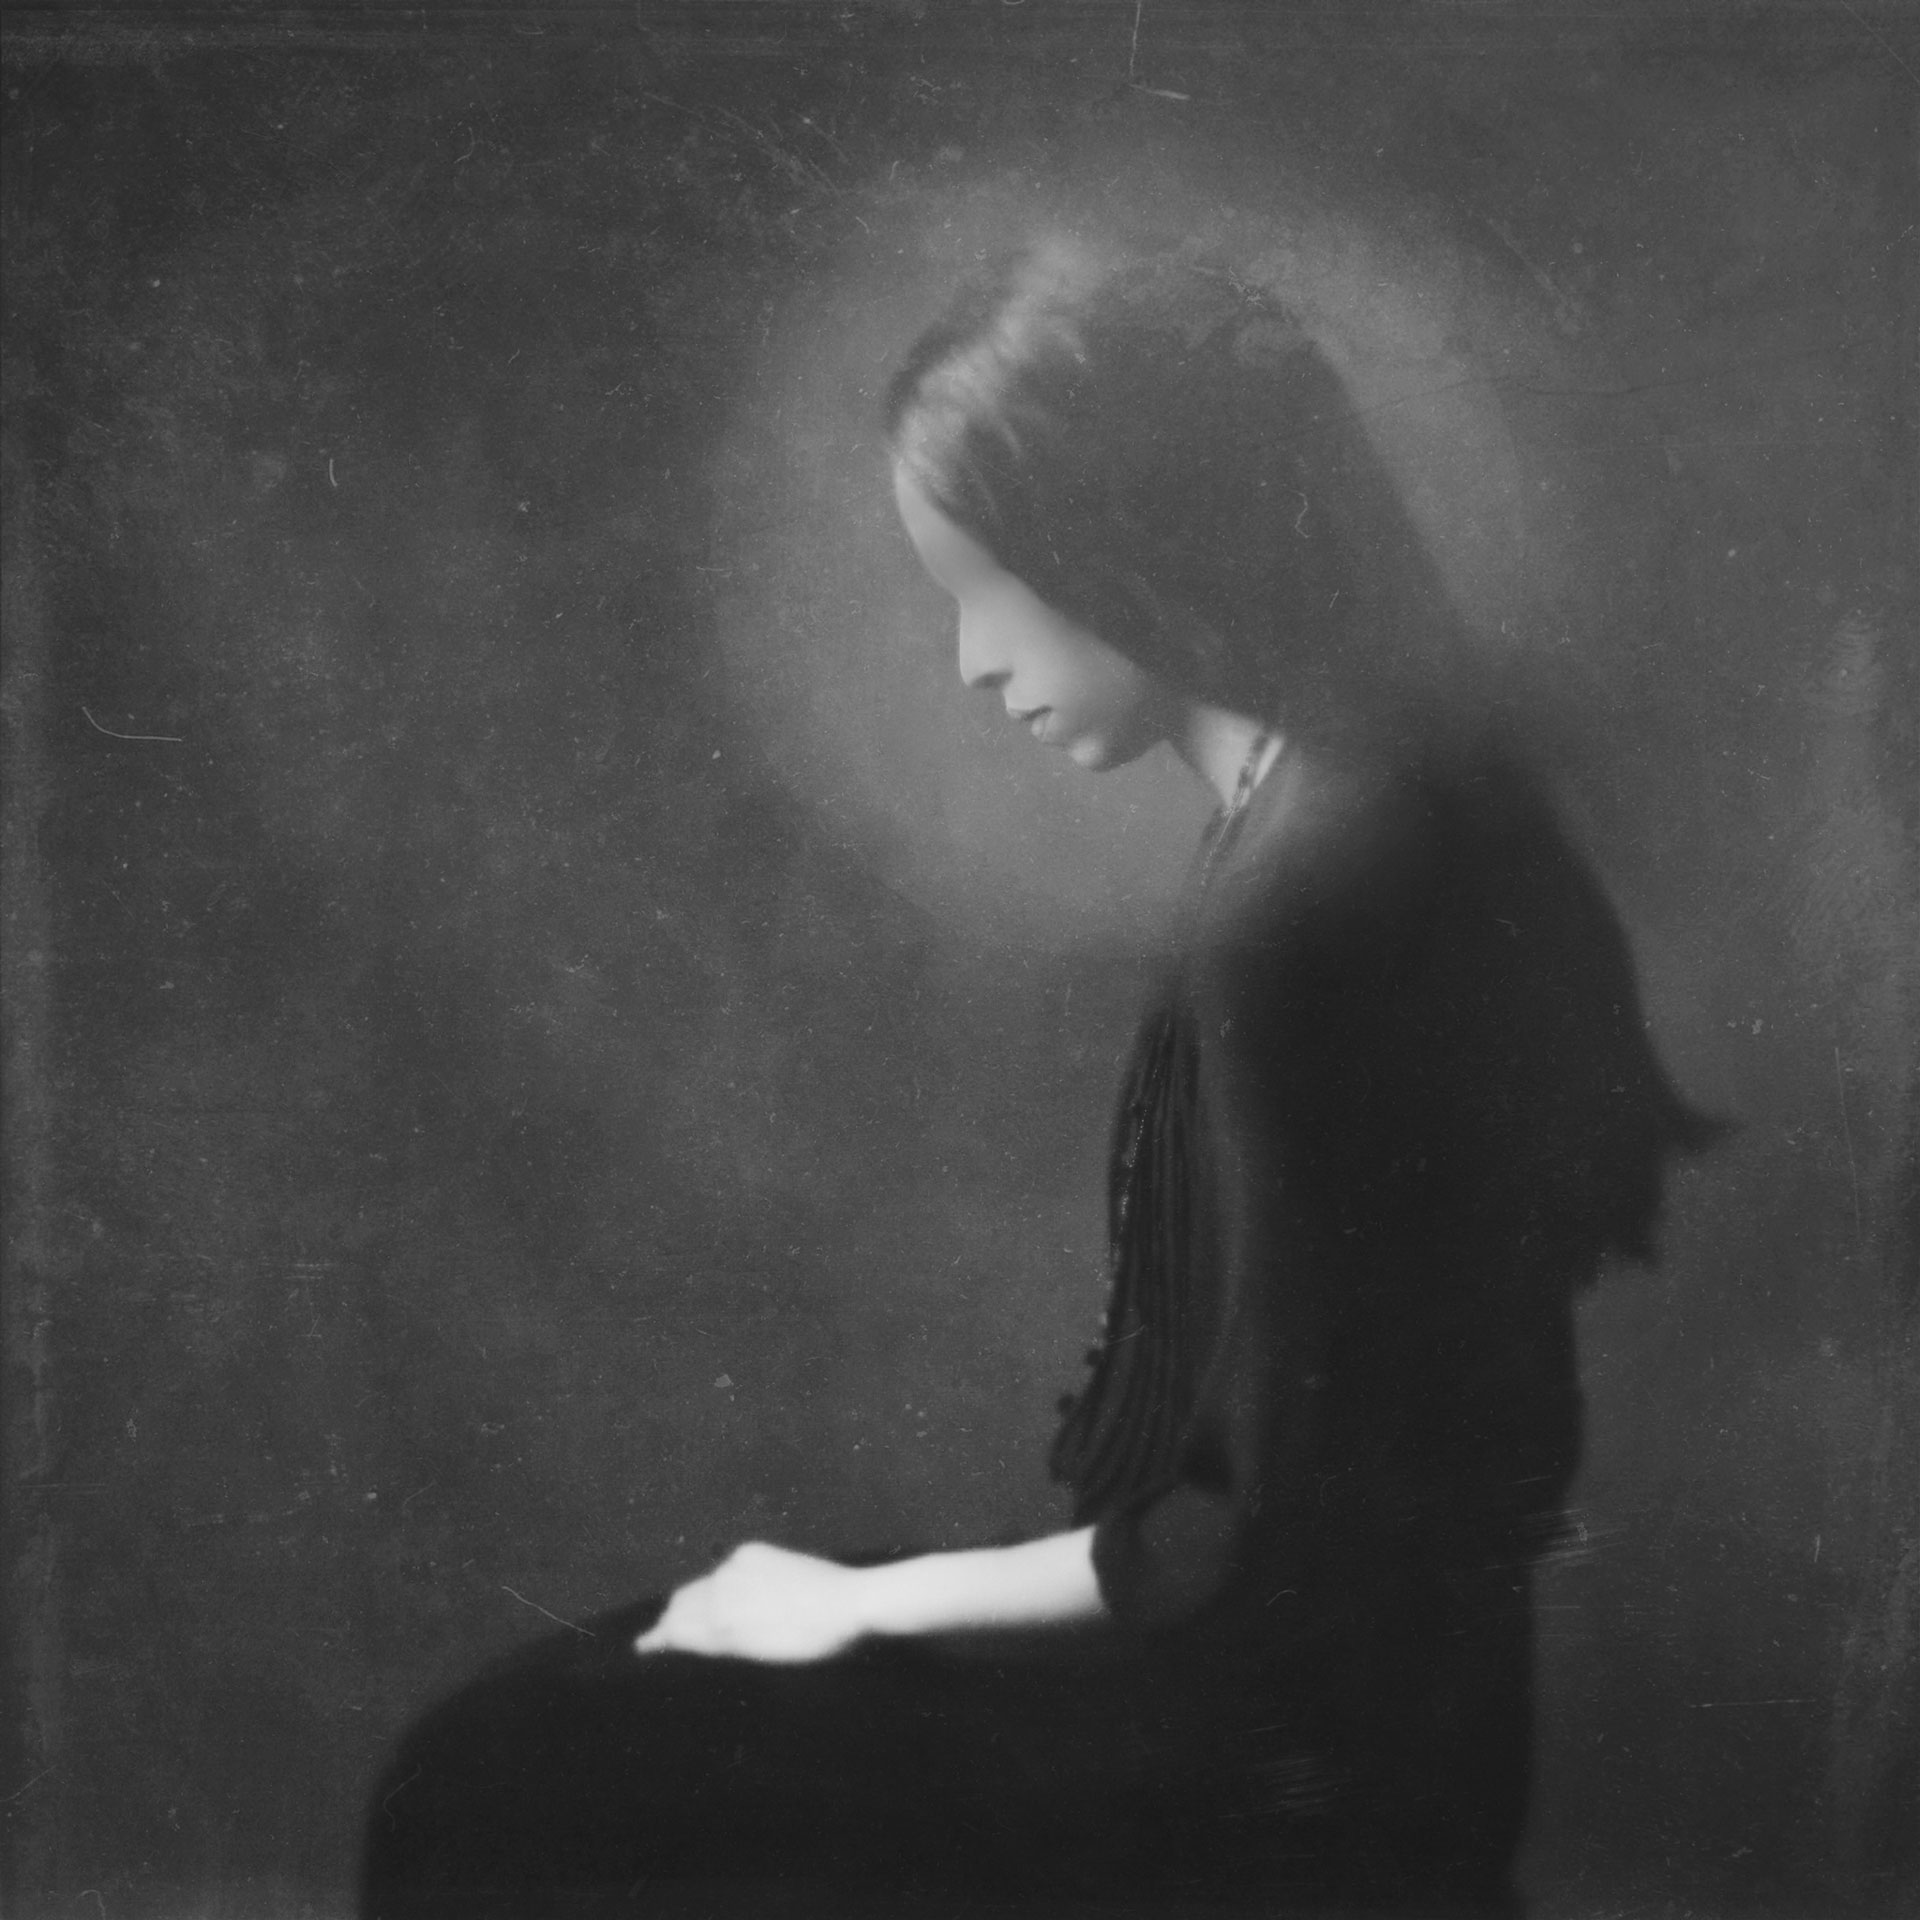 Josephine_Cardin_article_03